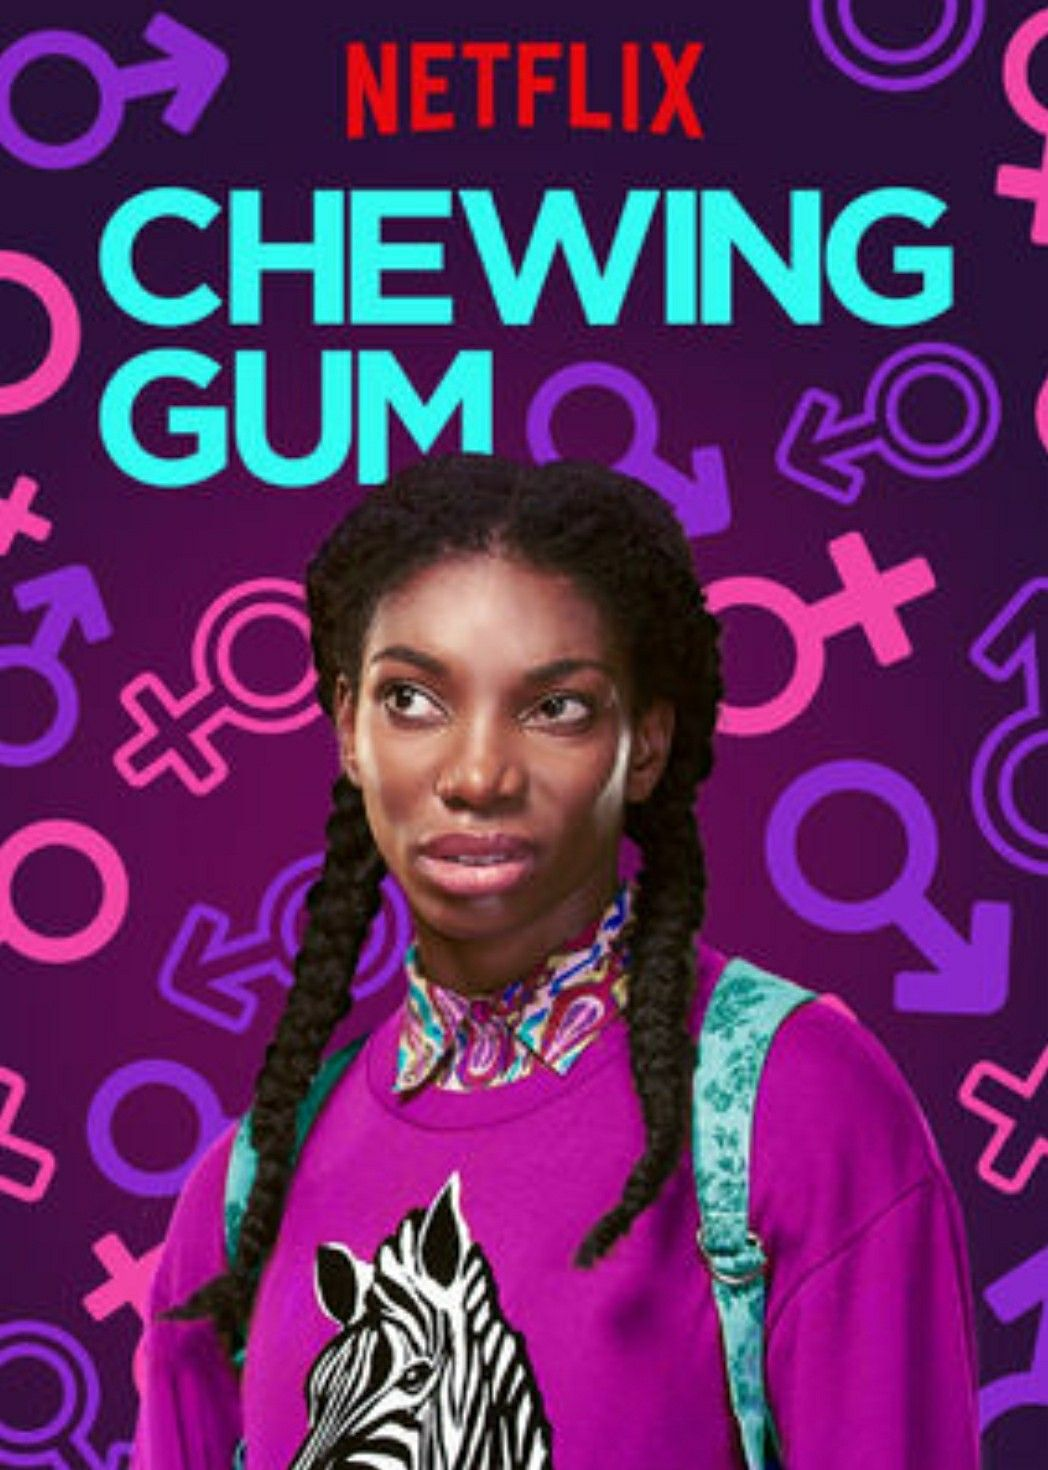 Pin by Kushana on Lets Watch | Chewing gum, Netflix, Tv shows